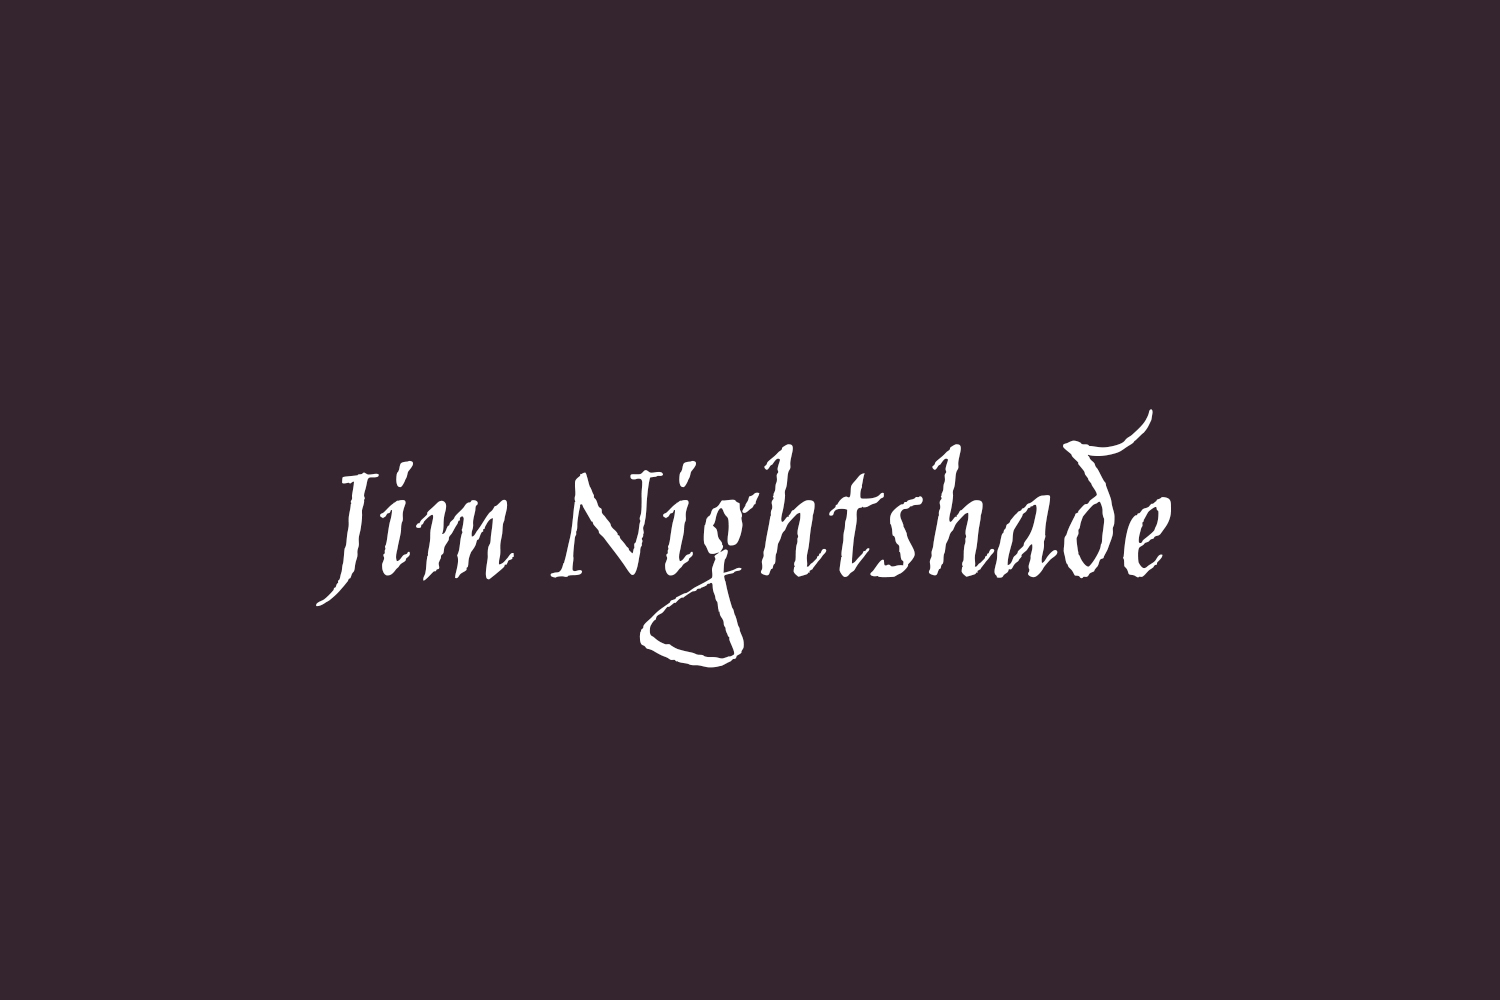 Jim Nightshade